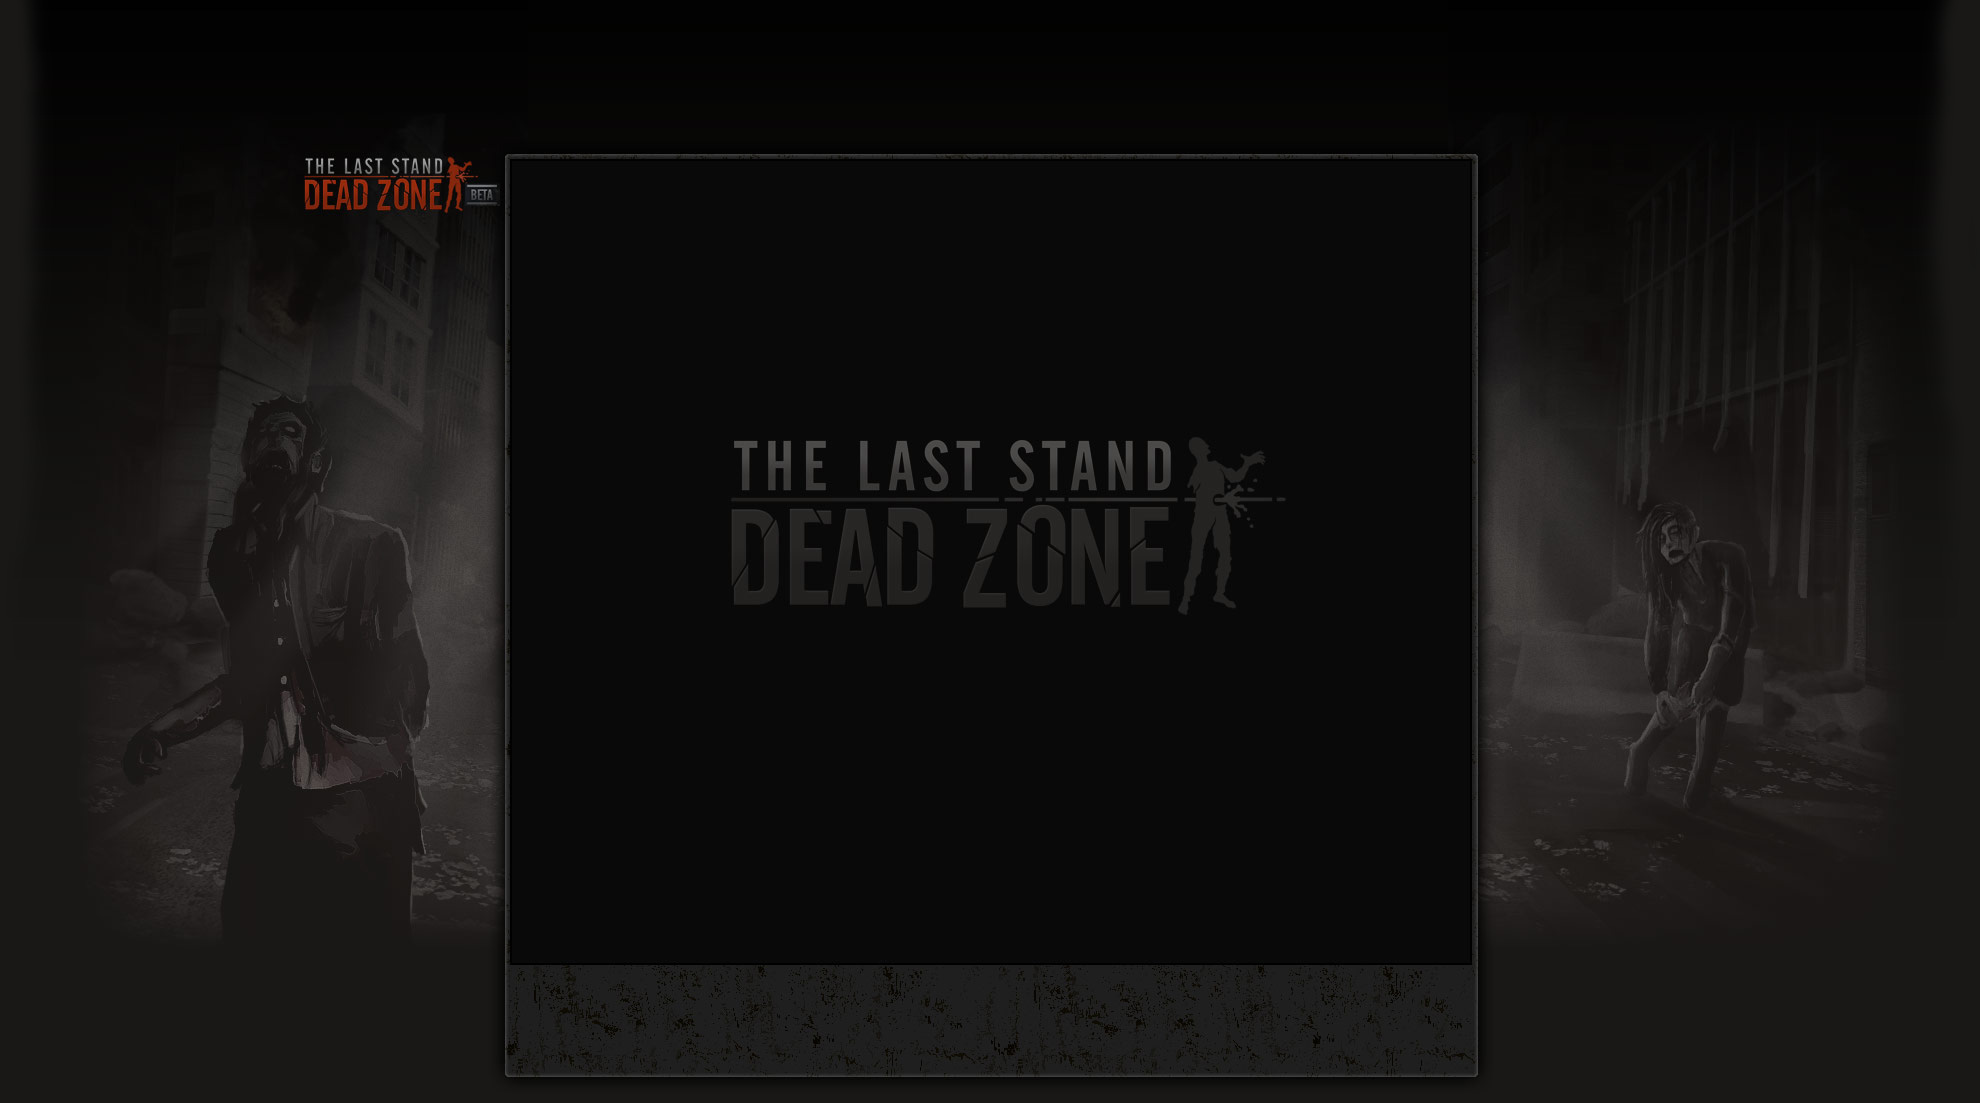 the last stand dead zone app